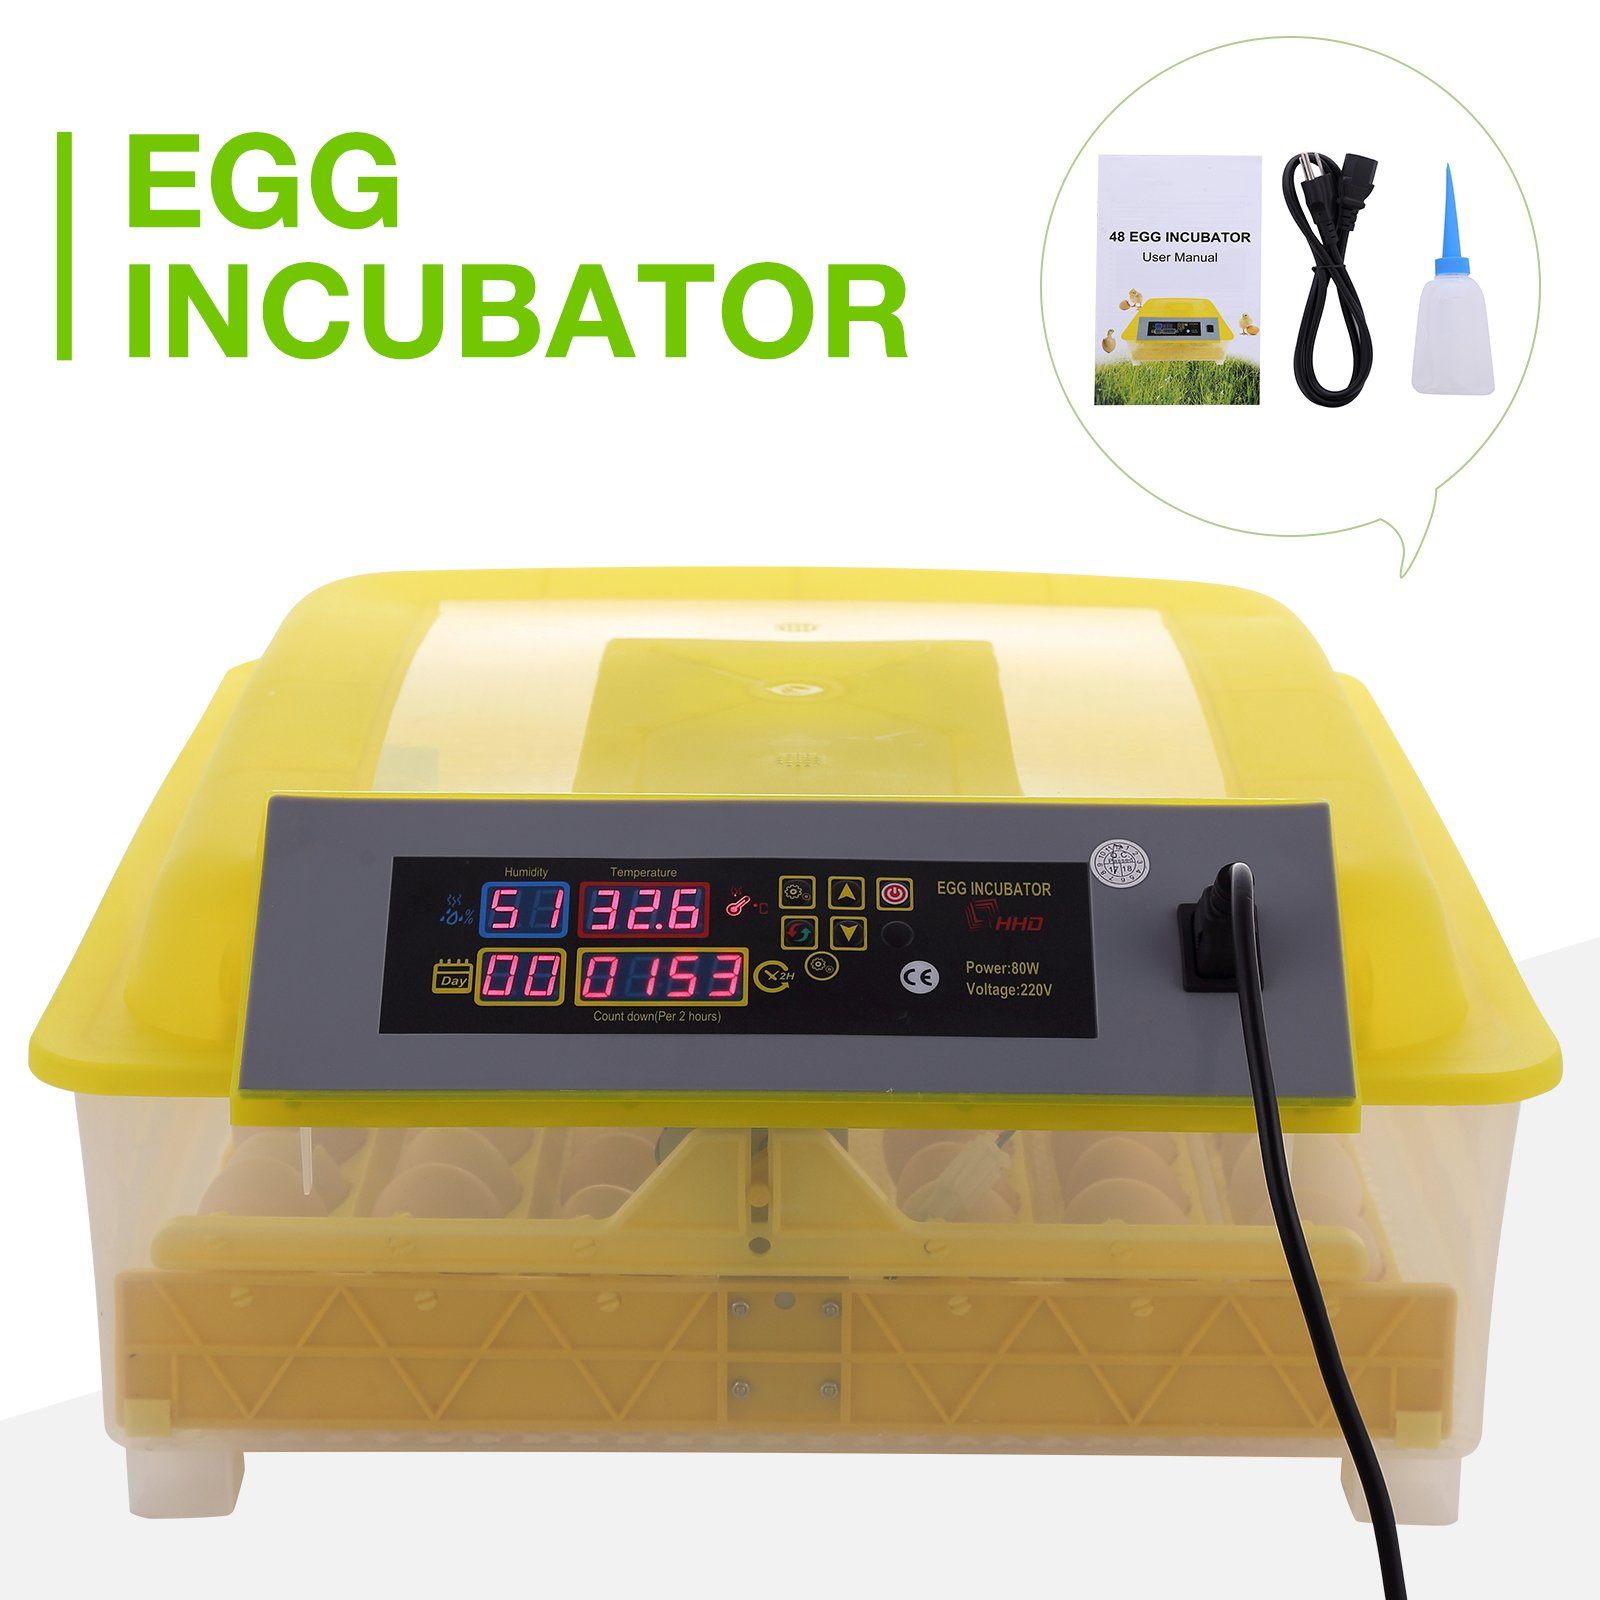 KUPPET Egg Incubator 48 Eggs 2 Layer Digital Control Panel Poultry Hatcher Auto Egg Turner (48 Eggs)